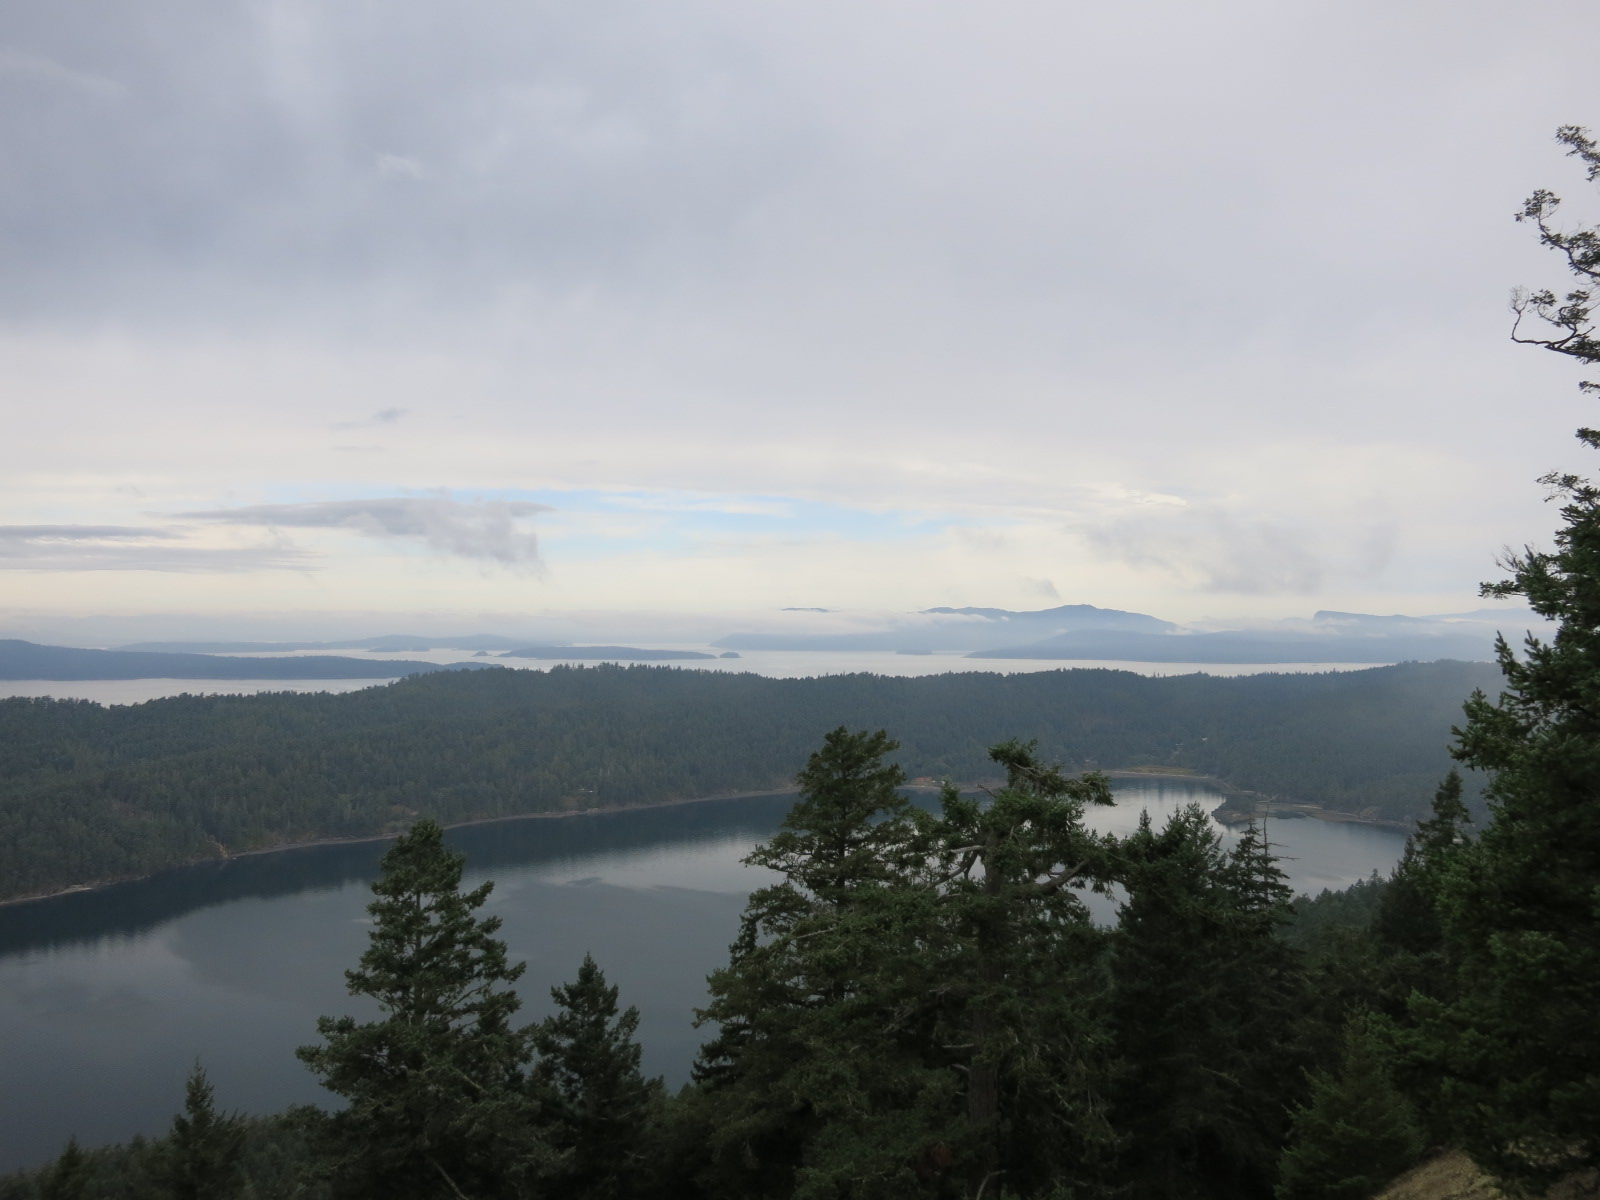 The view from Mt. Norman